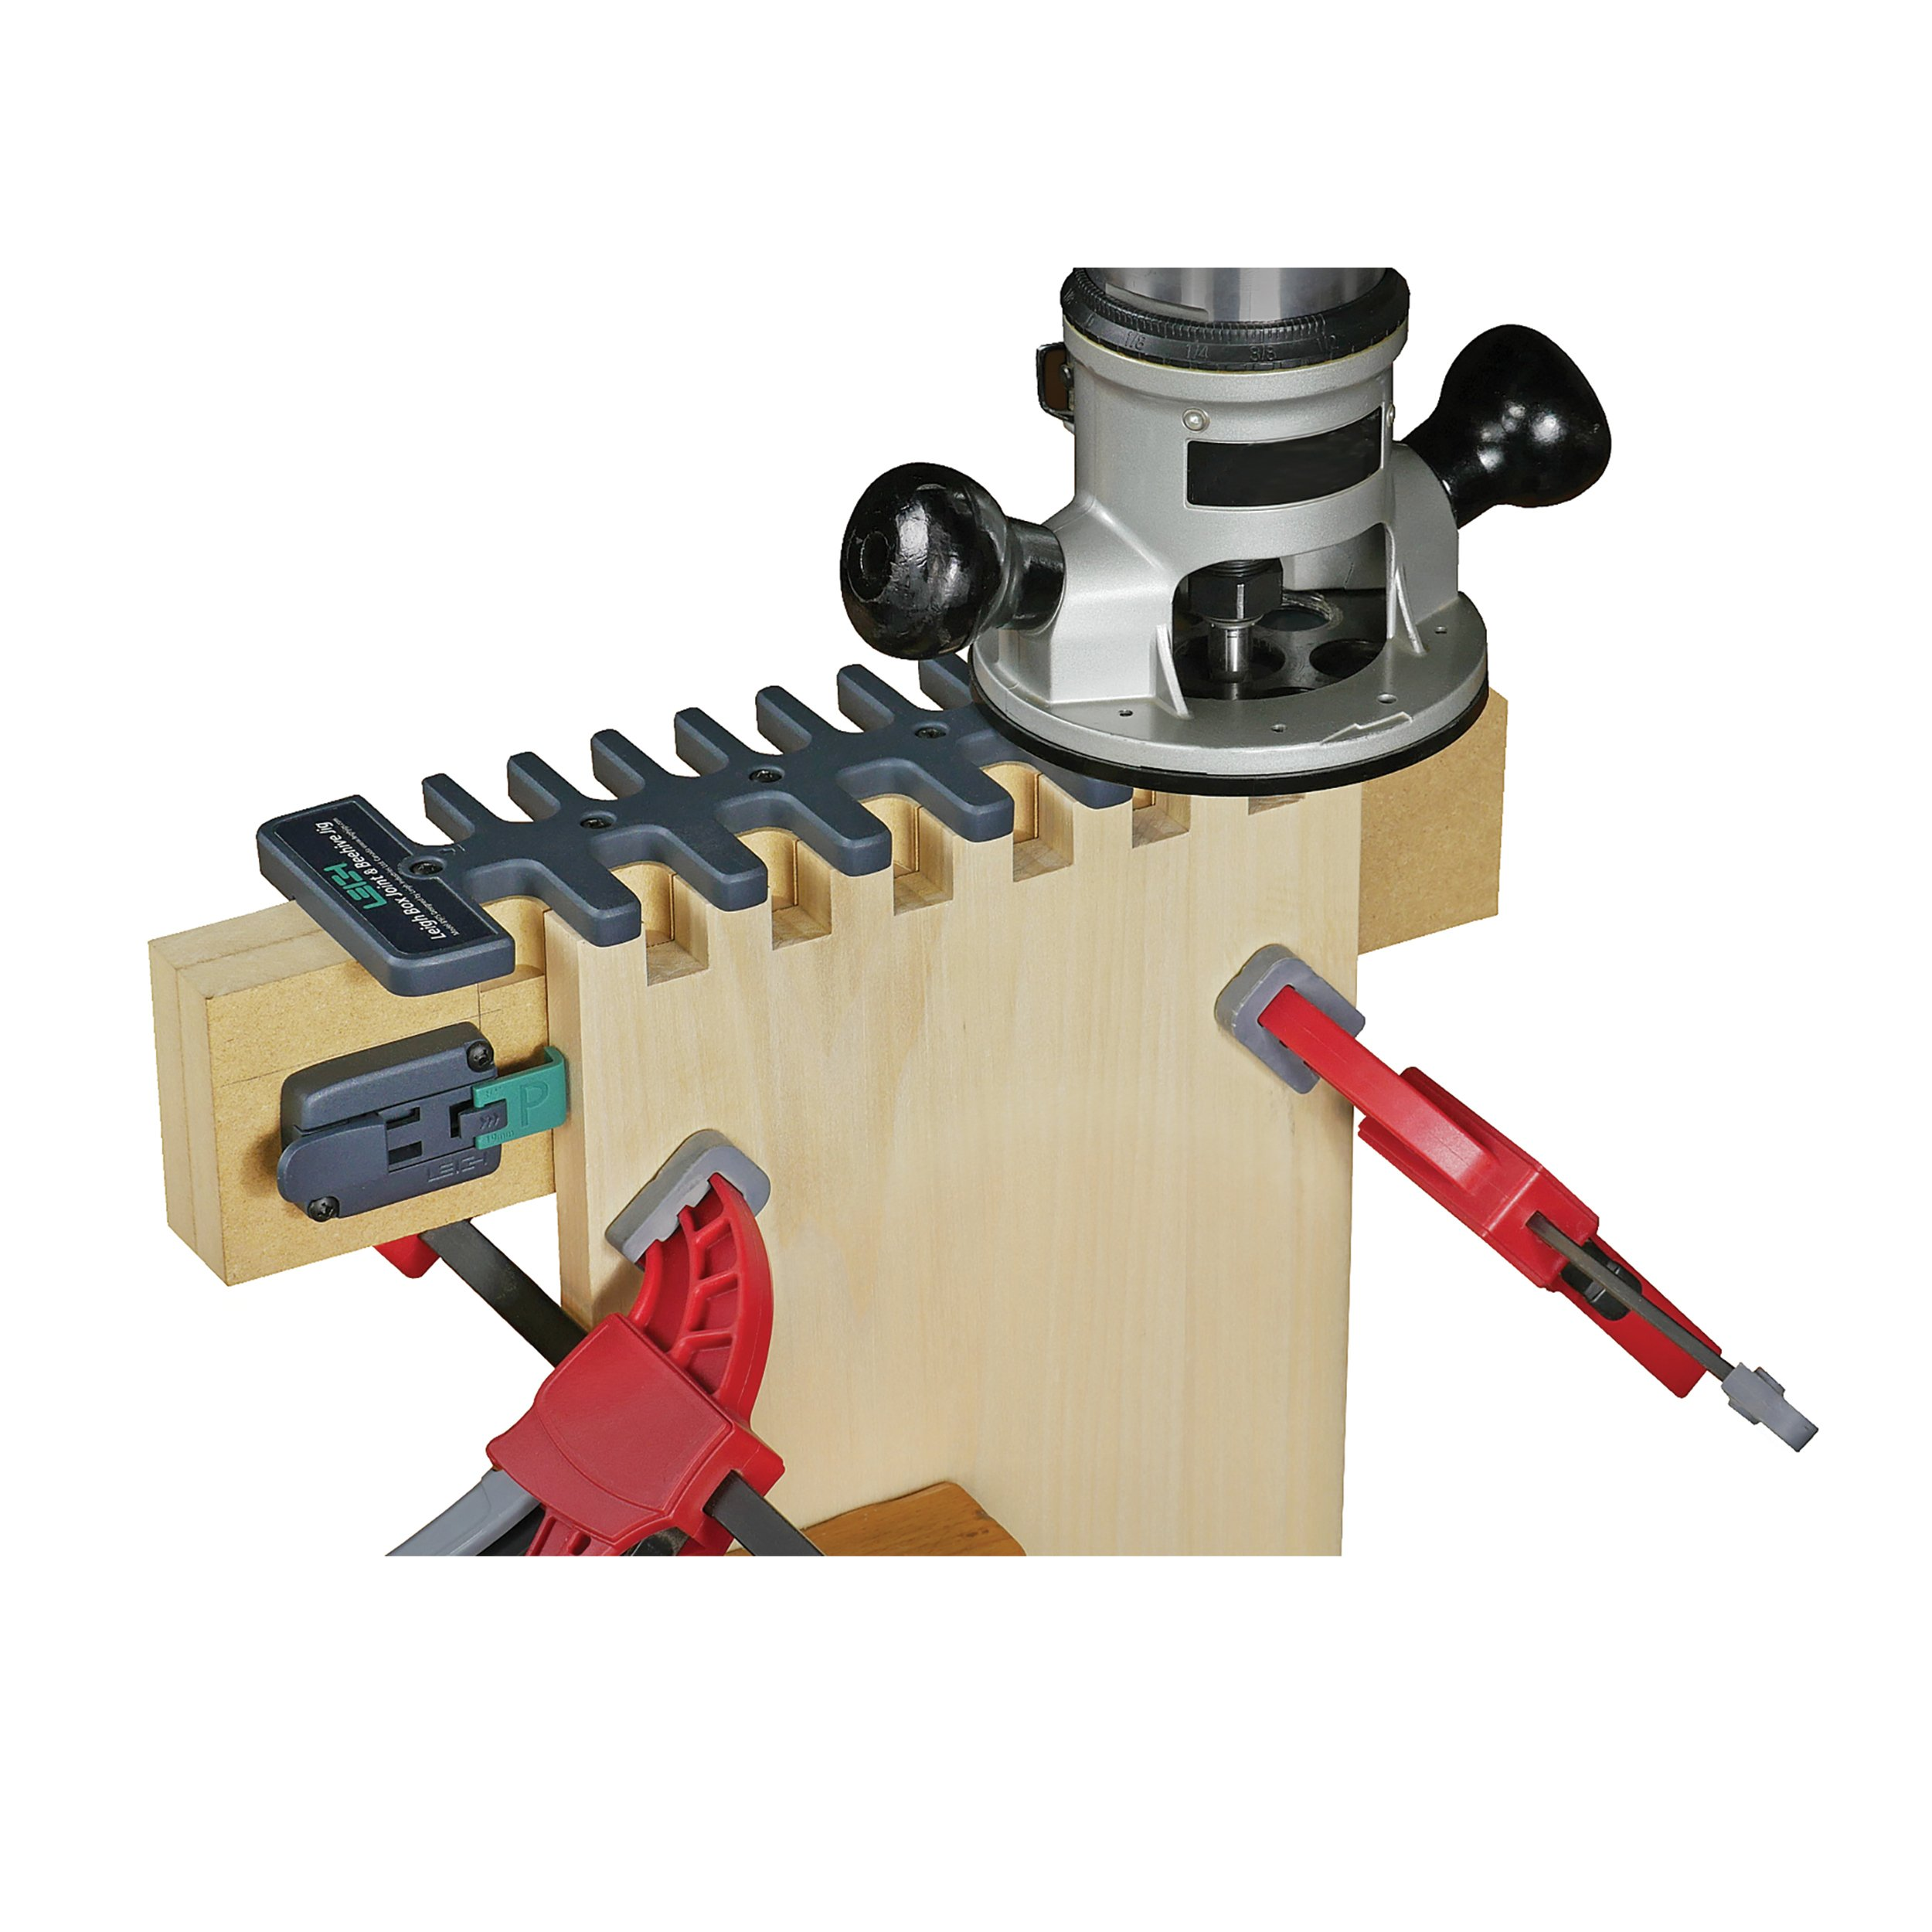 LEIGH Box Joint & Beehive Router Jig, Model B975 by Leigh